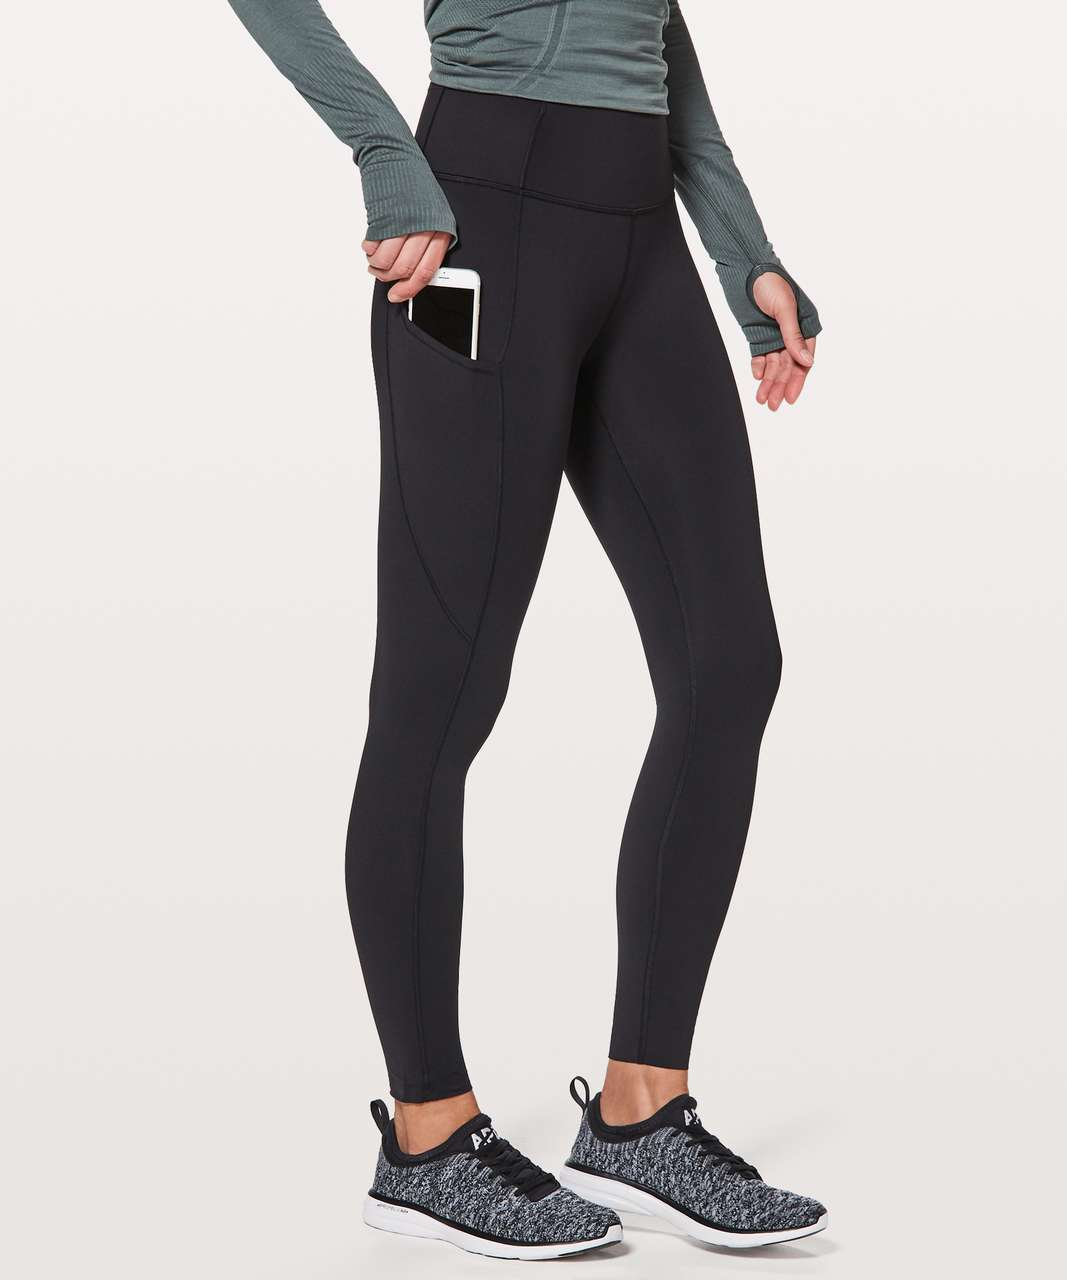 "Lululemon Fast & Free 7/8 Tight II *Non-Reflective Nulux 25"" - Black (First Release)"